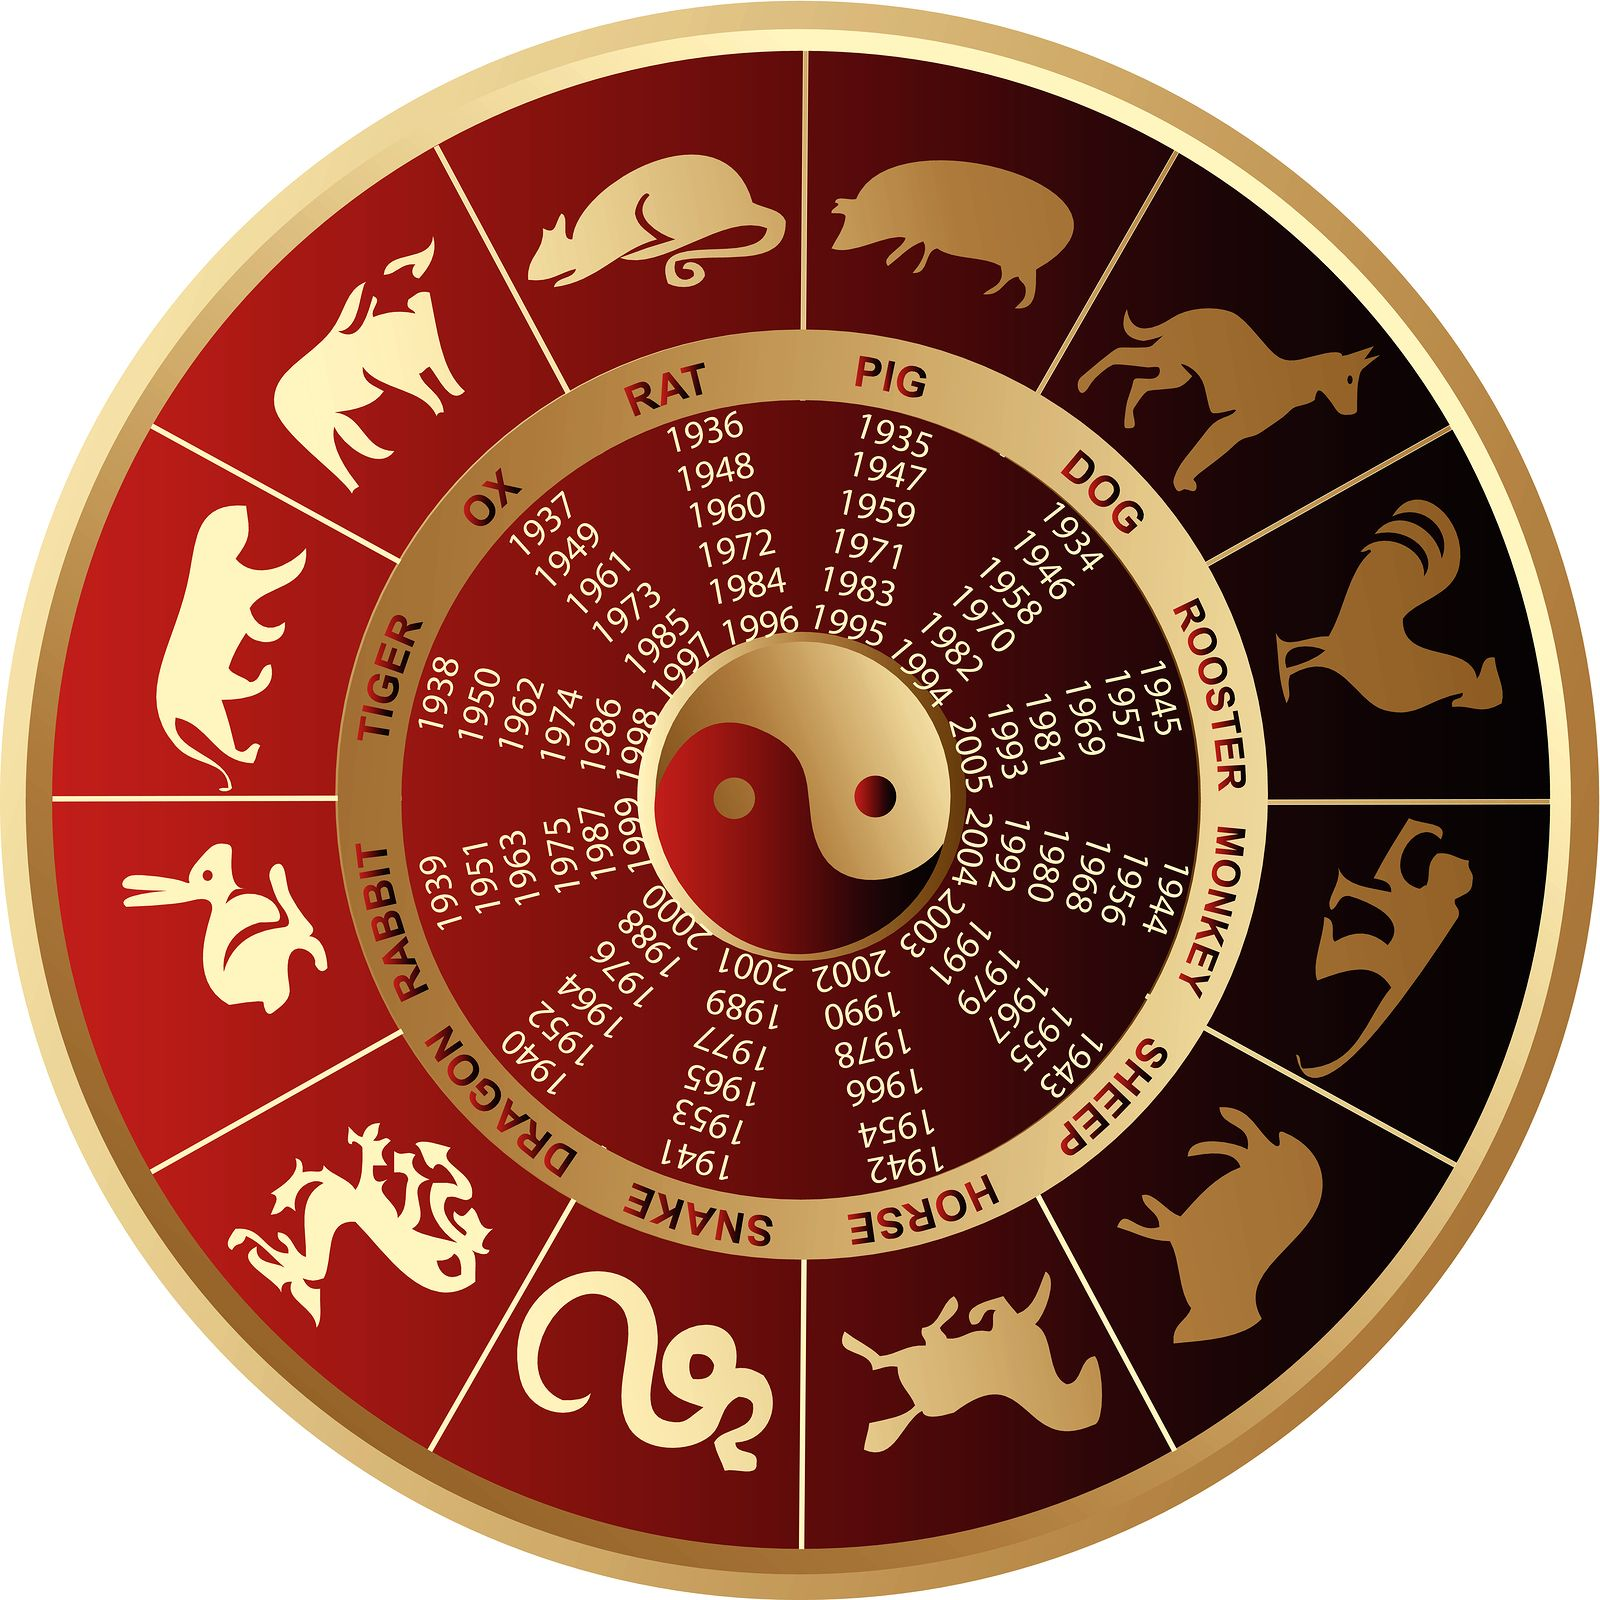 Chinese horoscope 2014 where can i find a real psychic reading free chinese astrology readings forecasts and predictions daily for calculate your chinese zodiac sign chinese astrology daily for love money work nvjuhfo Choice Image